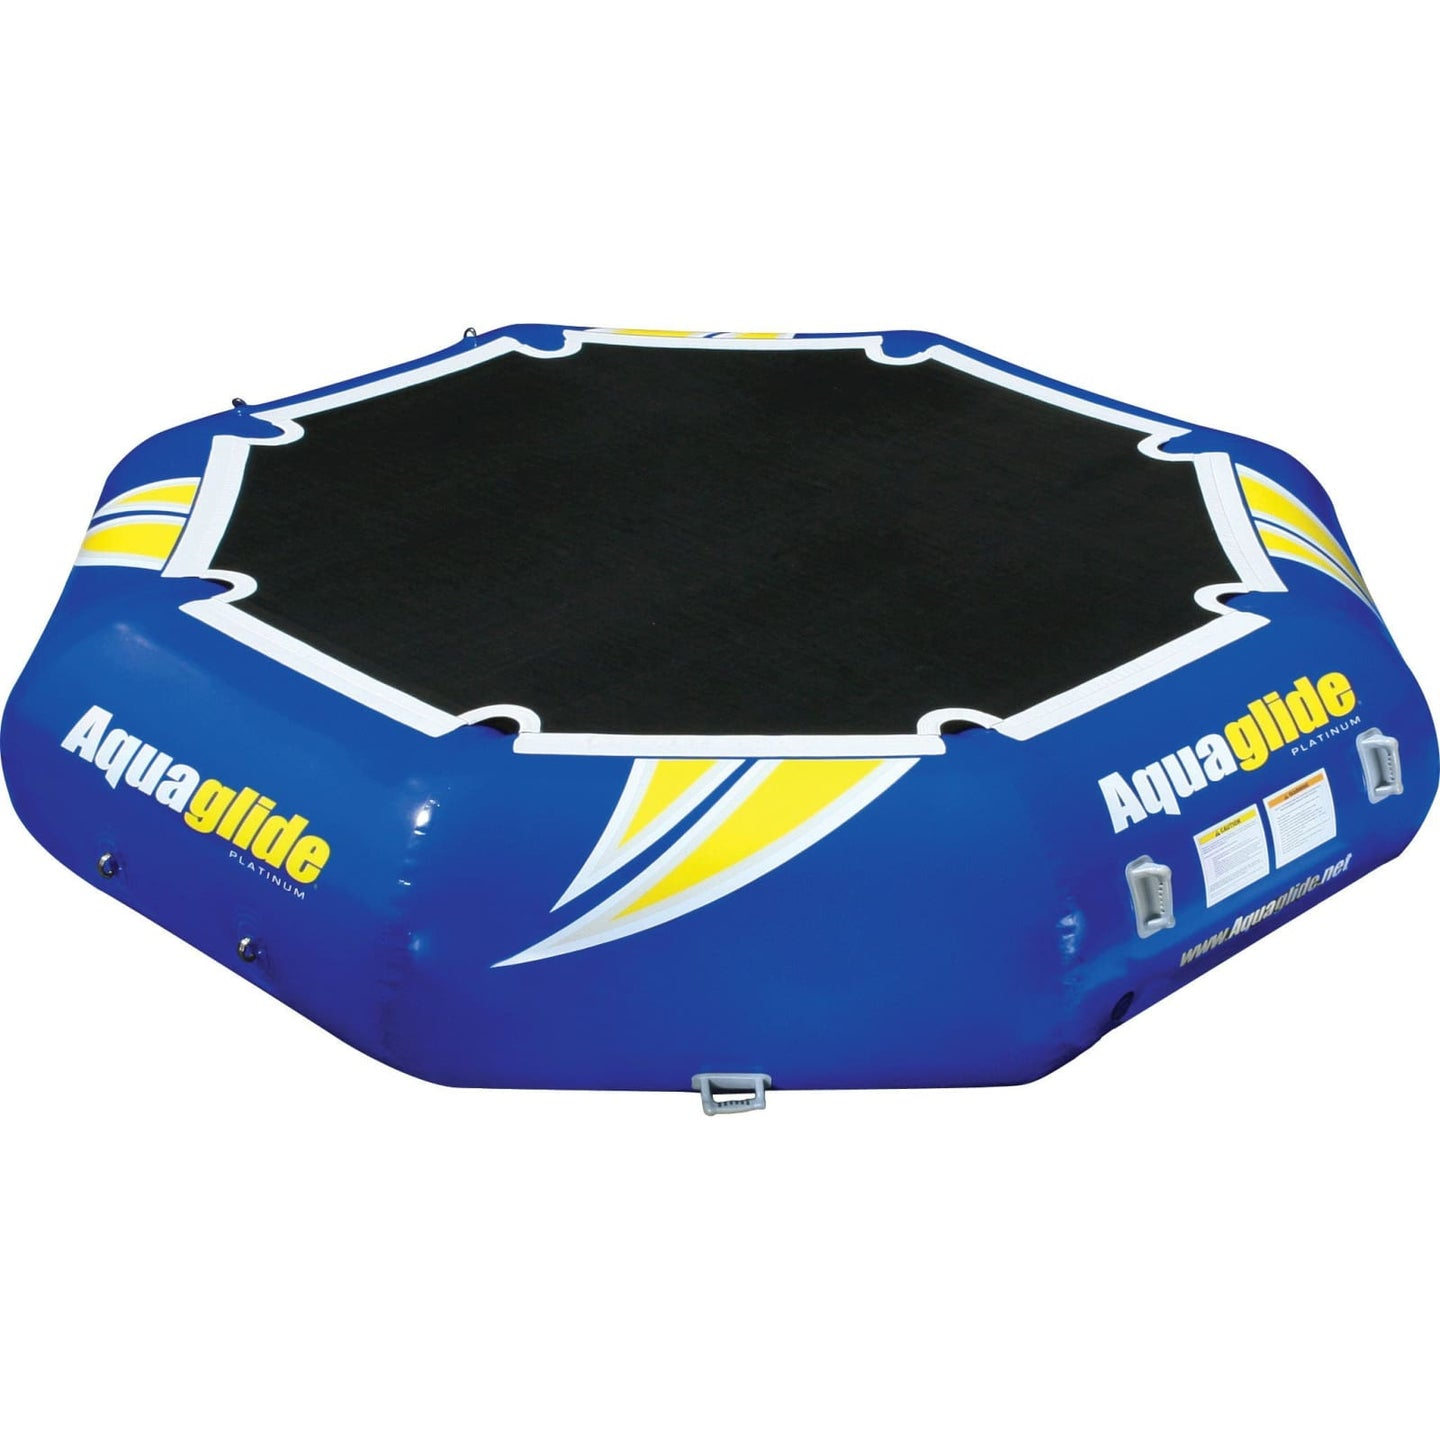 Aquaglide Rebound 12 Water Bouncer - 585209100 - Water Bouncers